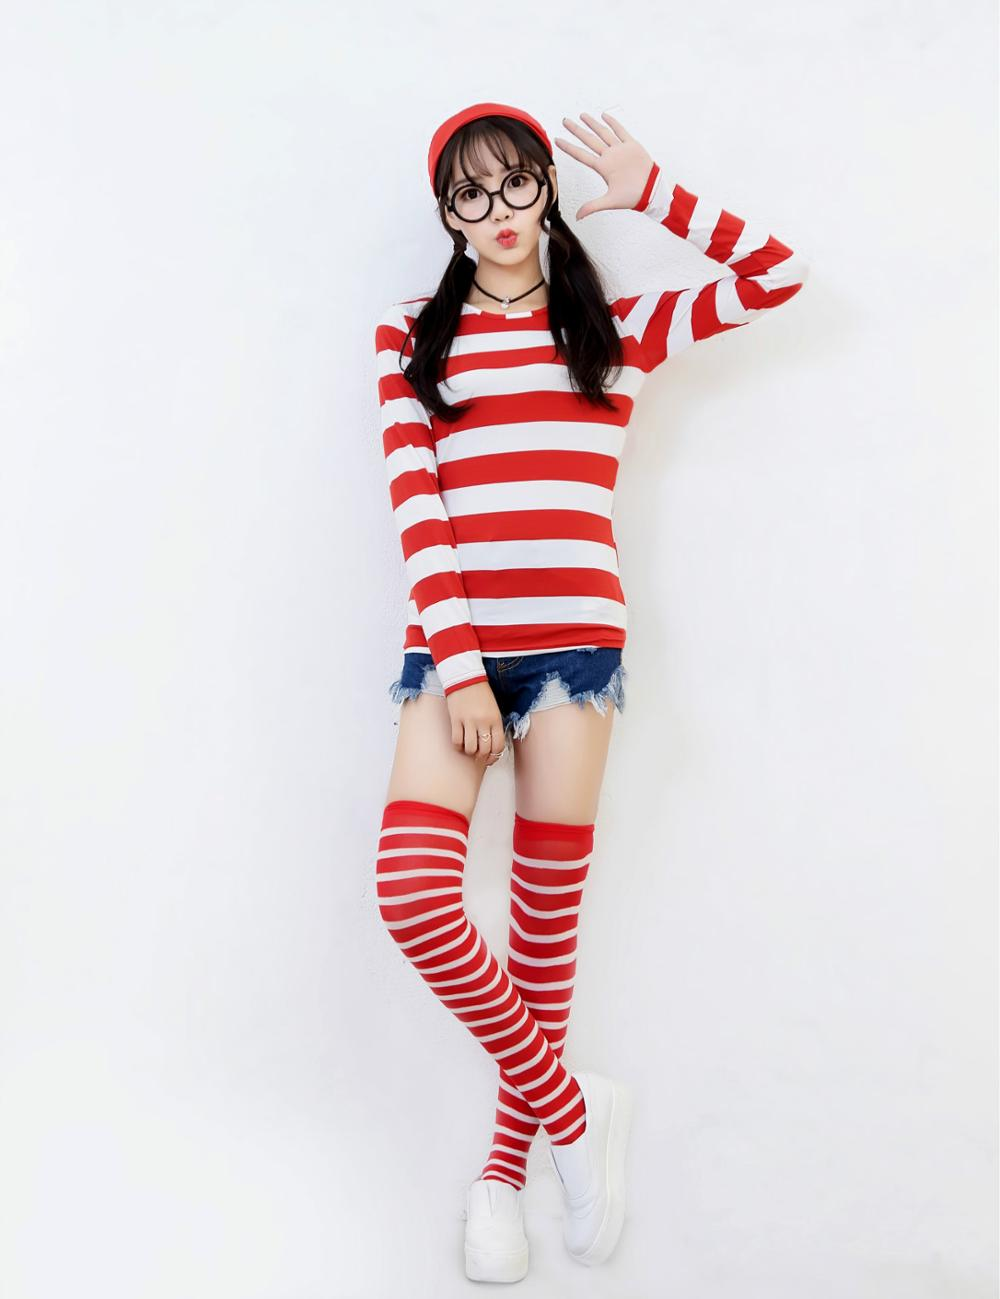 Family Wally Costume Women Man Child Anime Red White Stripe Cosplay Outfit